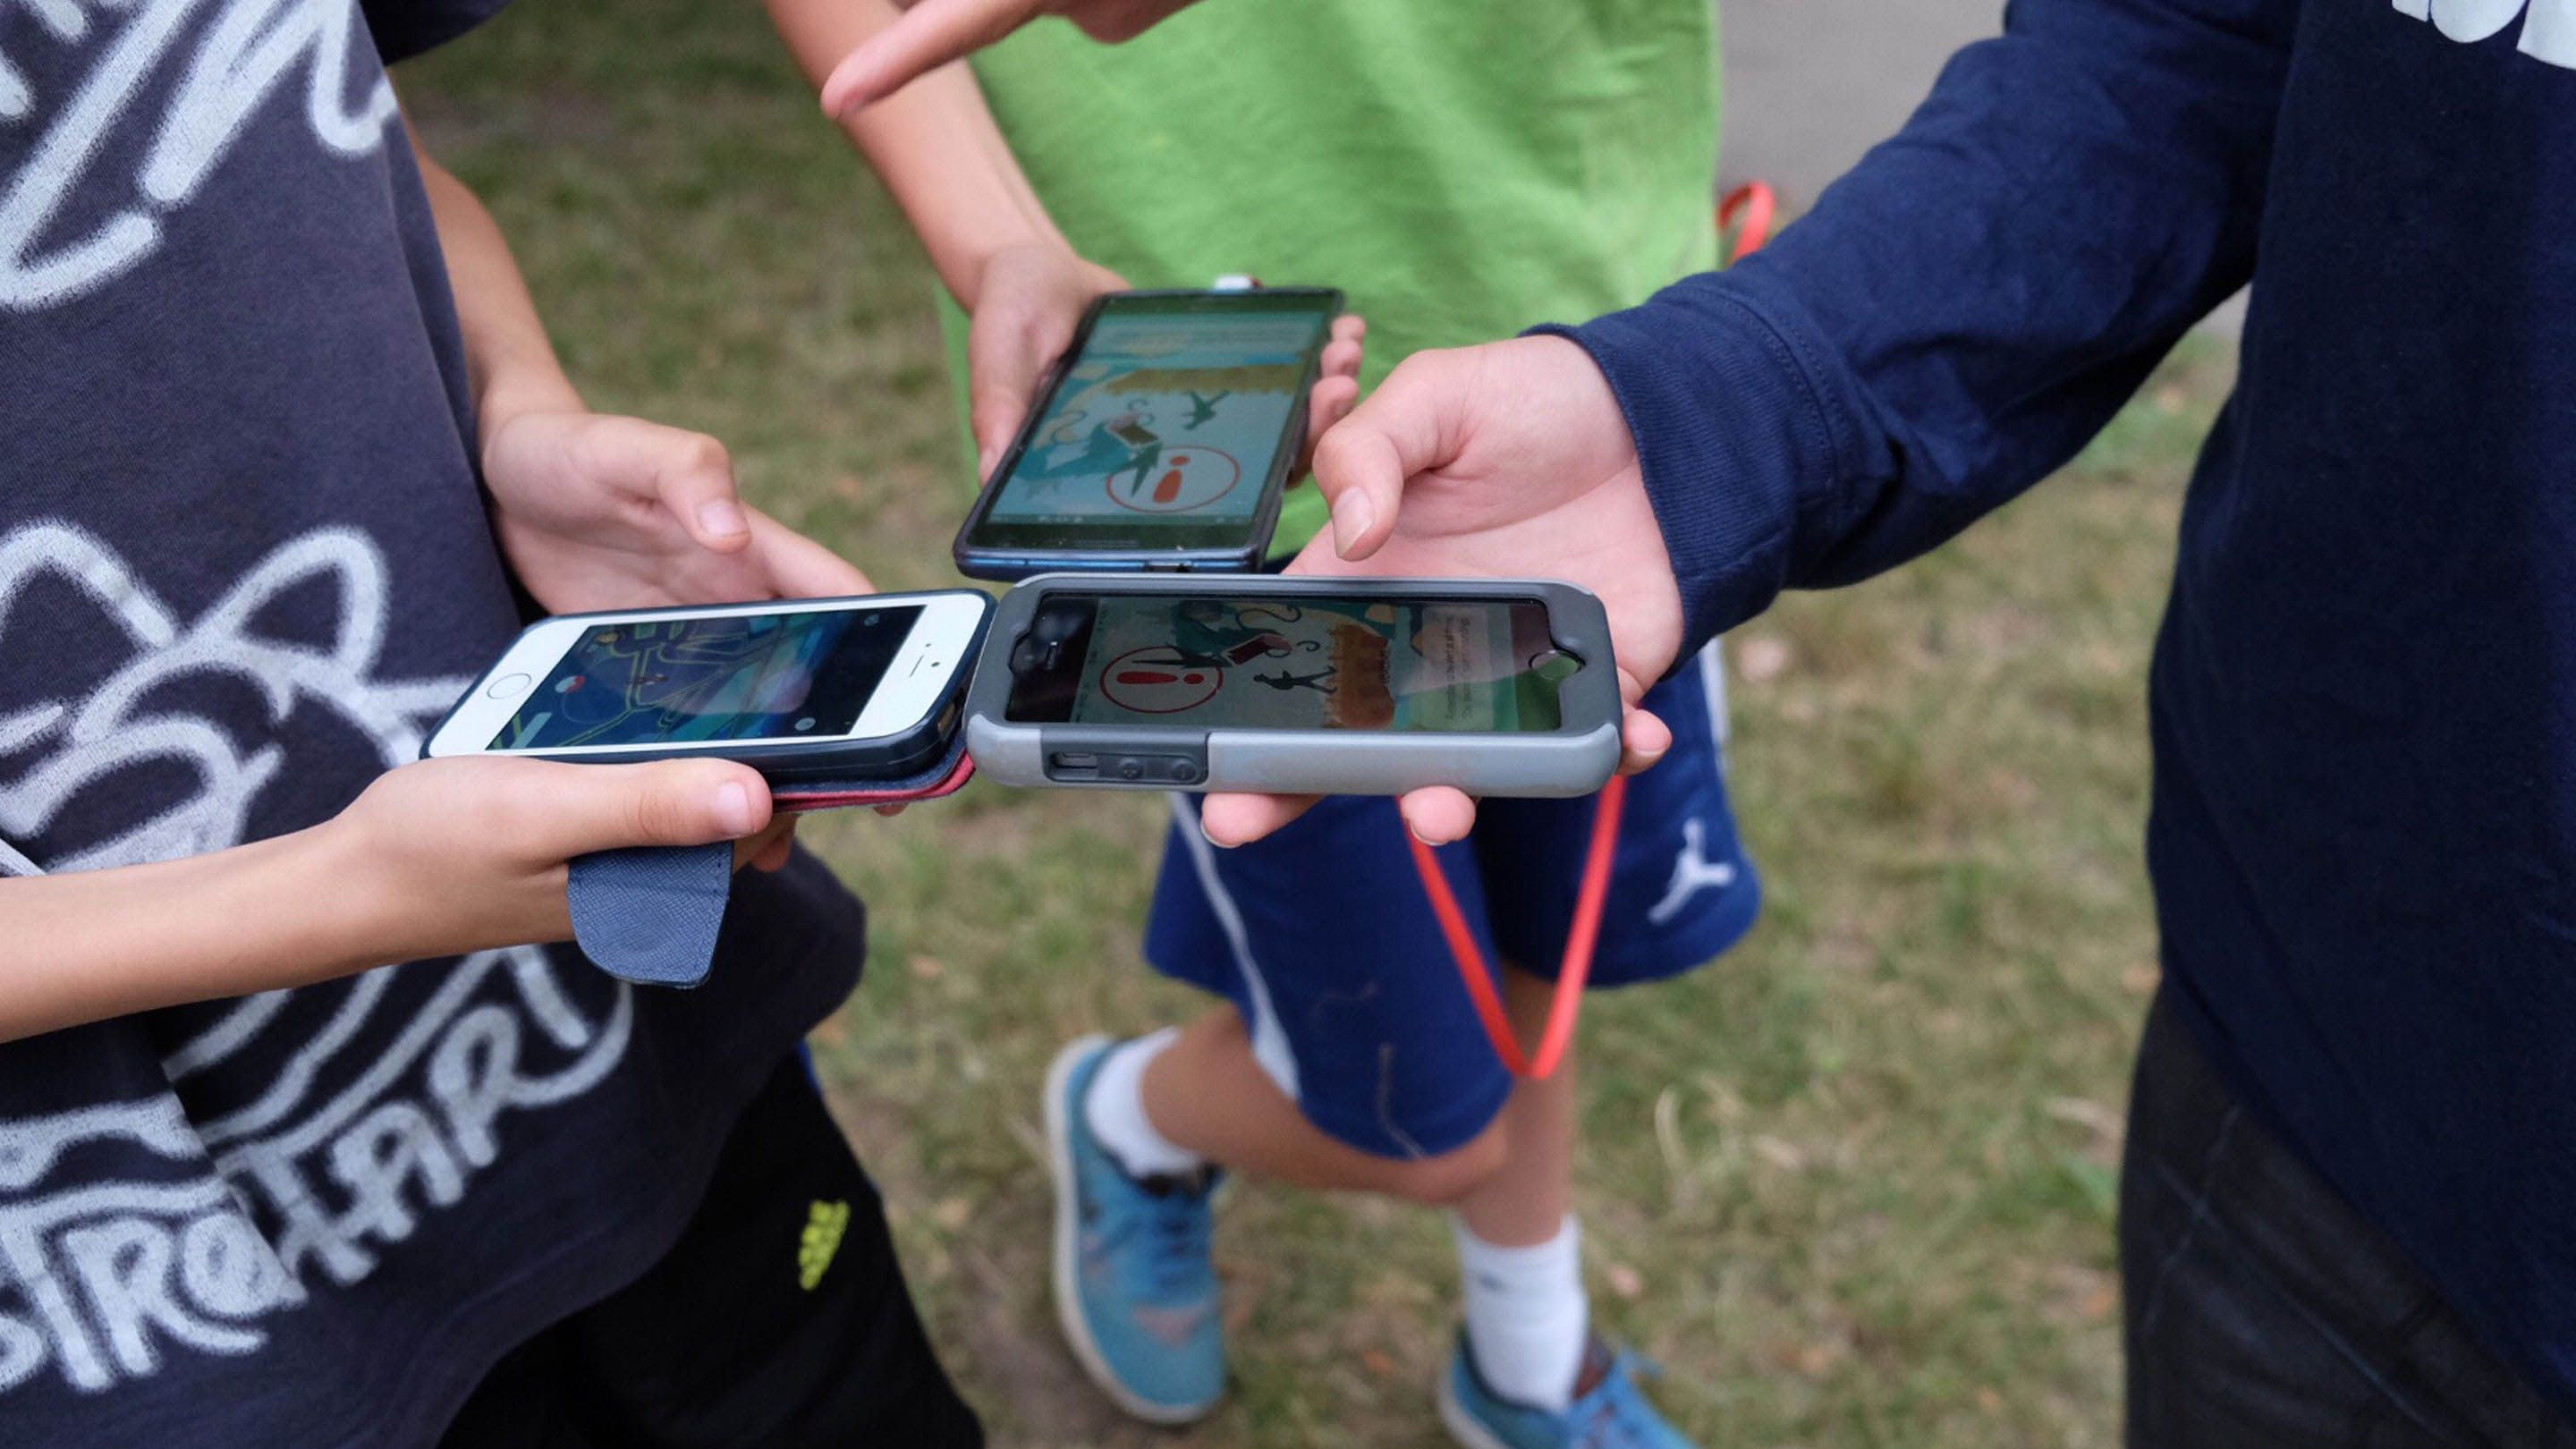 Three students are standing on the grass, a close up on their arms extended, smartphones in their hands, and Pokemon Go on their screens.